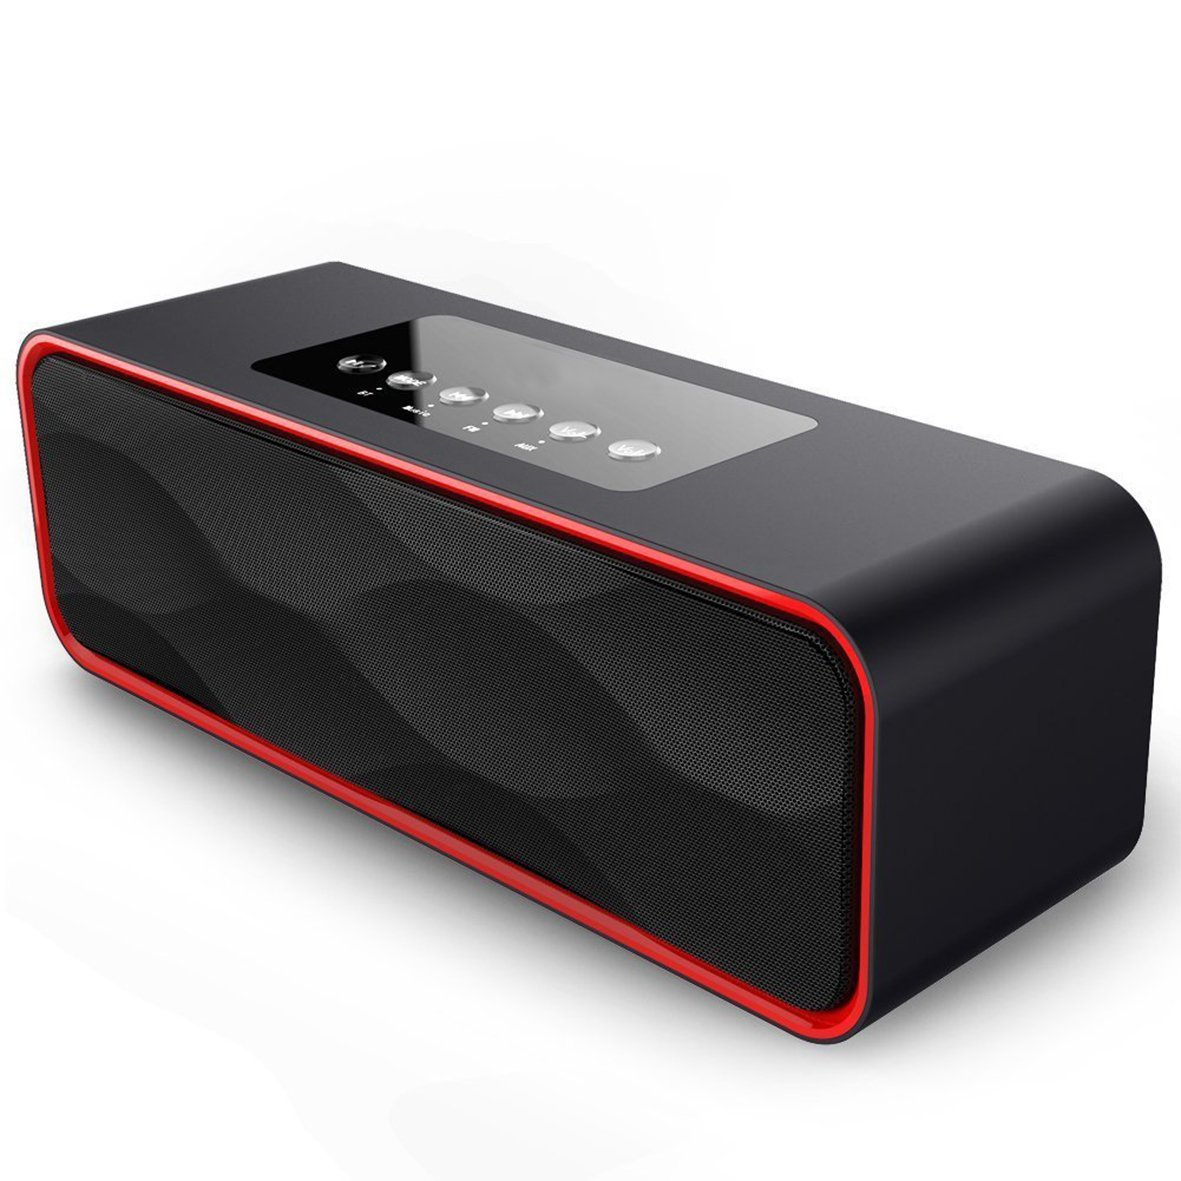 Portable Wireless Bluetooth Speakers,XPLUS All-in-1 Portable HIFI V4.0 Wireless Bluetooth Speakers,Hands-Free Speakerphone with Mic,Support TF Card for Smartphones and All Audio Enabled Devices (Black)